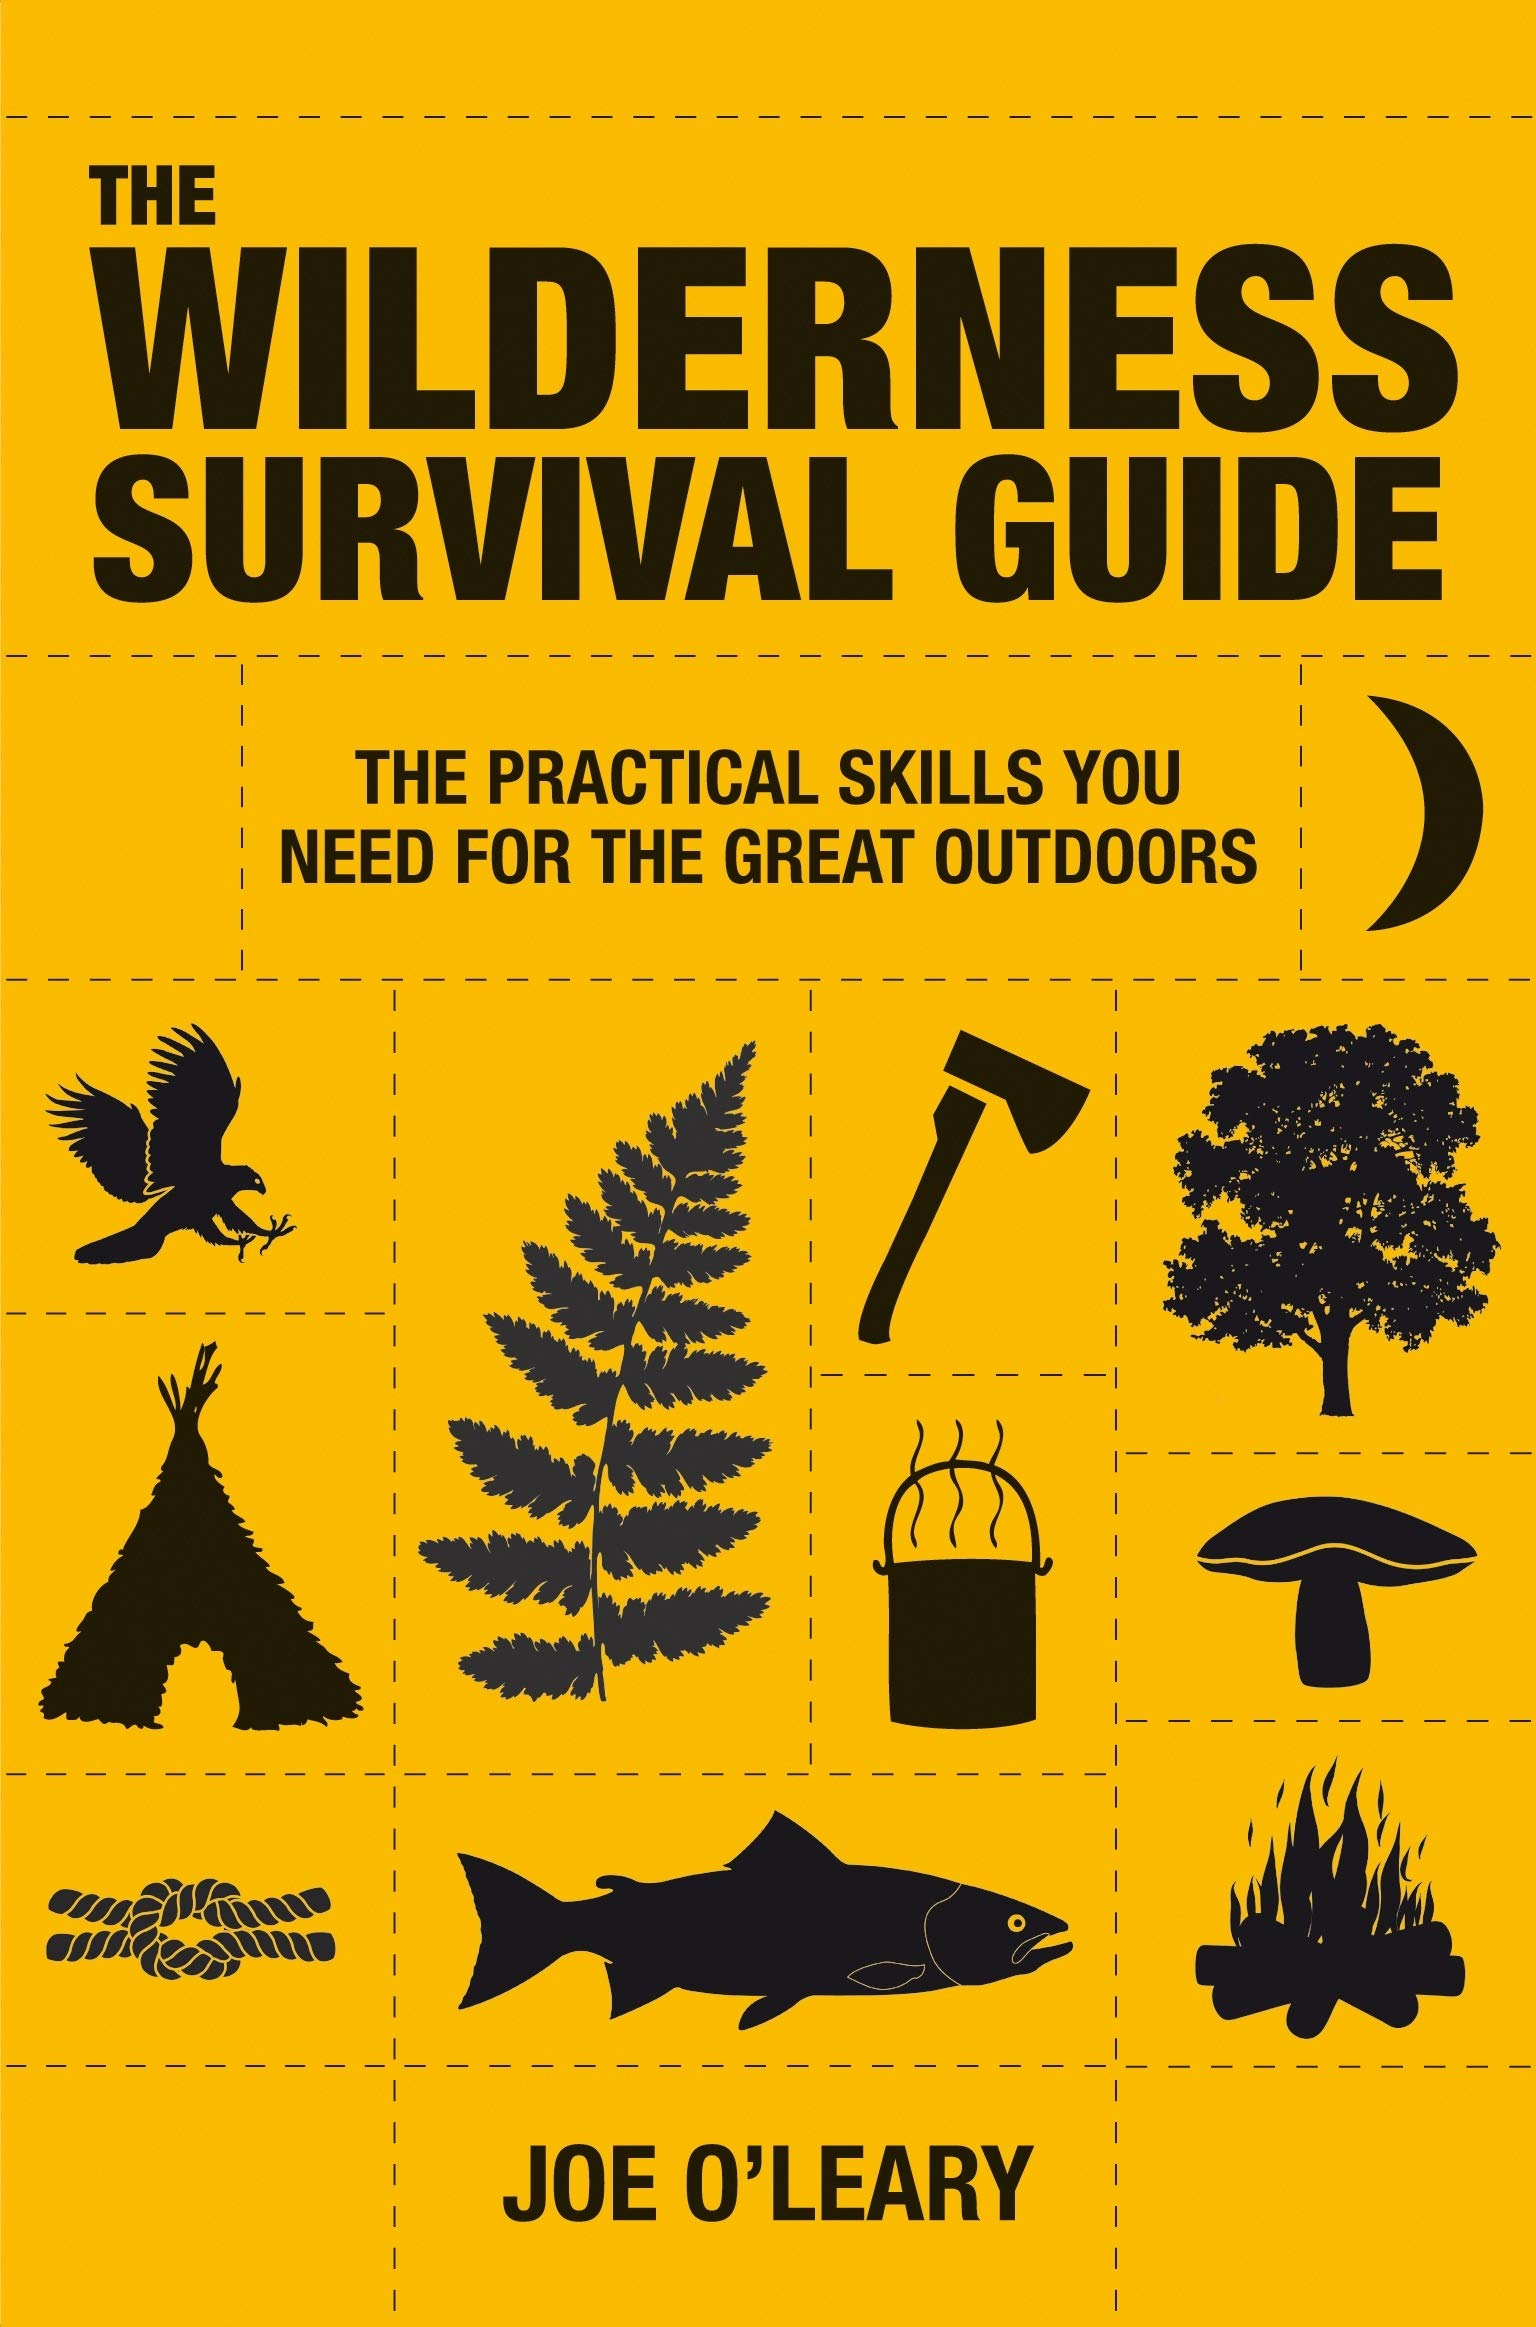 Image OfThe Wilderness Survival Guide: Techniques And Know-how For Surviving In The Wild